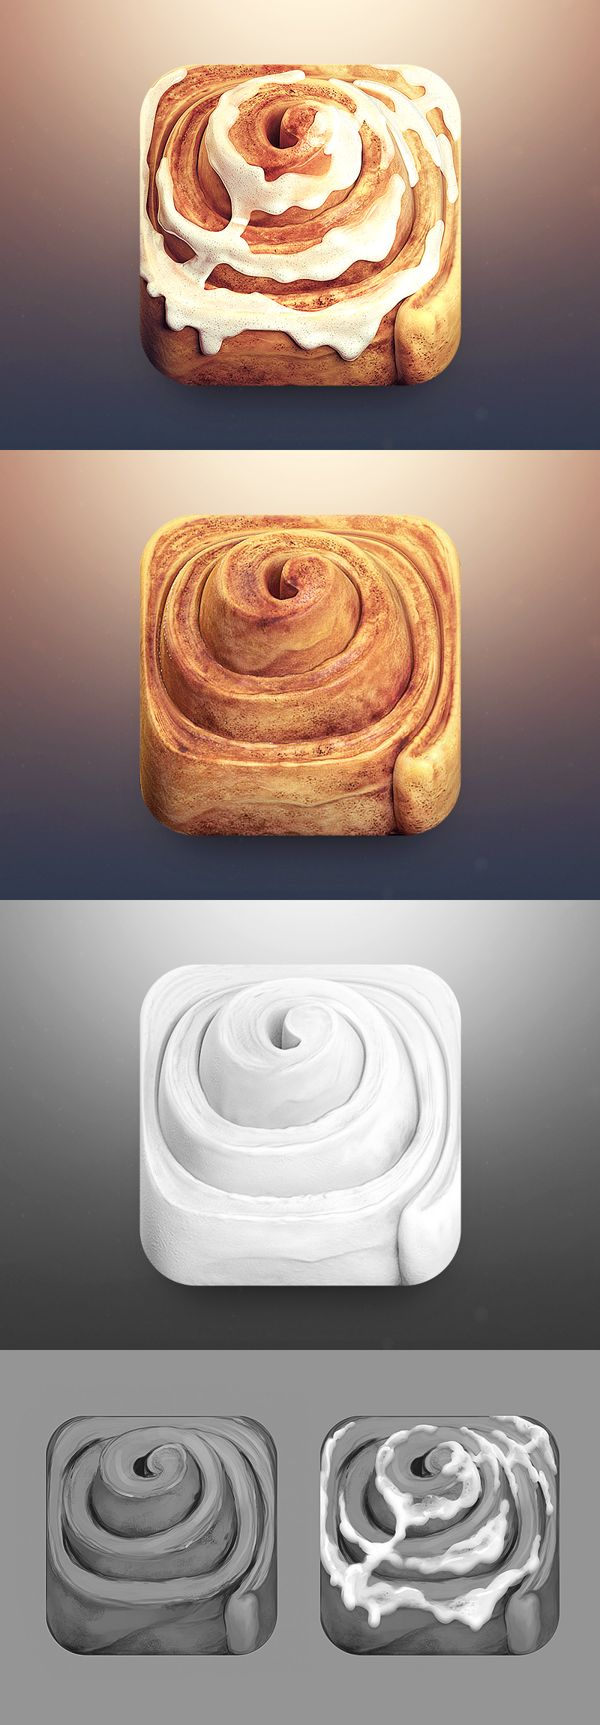 Cinnamon Roll App Icon by CreativeDash , via Behance